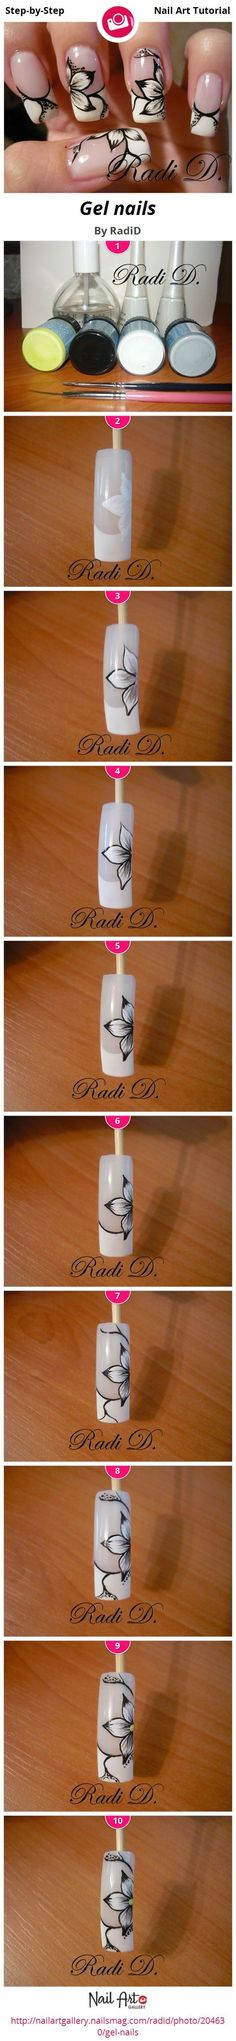 DIY Ideas Nails Art : Gel nails by RadiD - Nail Art Gallery Step-by-Step Tutorials nailartgallery.na..... https://diypick.com/beauty/diy-nails-art/diy-ideas-nails-art-gel-nails-by-radid-nail-art-gallery-step-by-step-tutorials-nailartgallery-na/